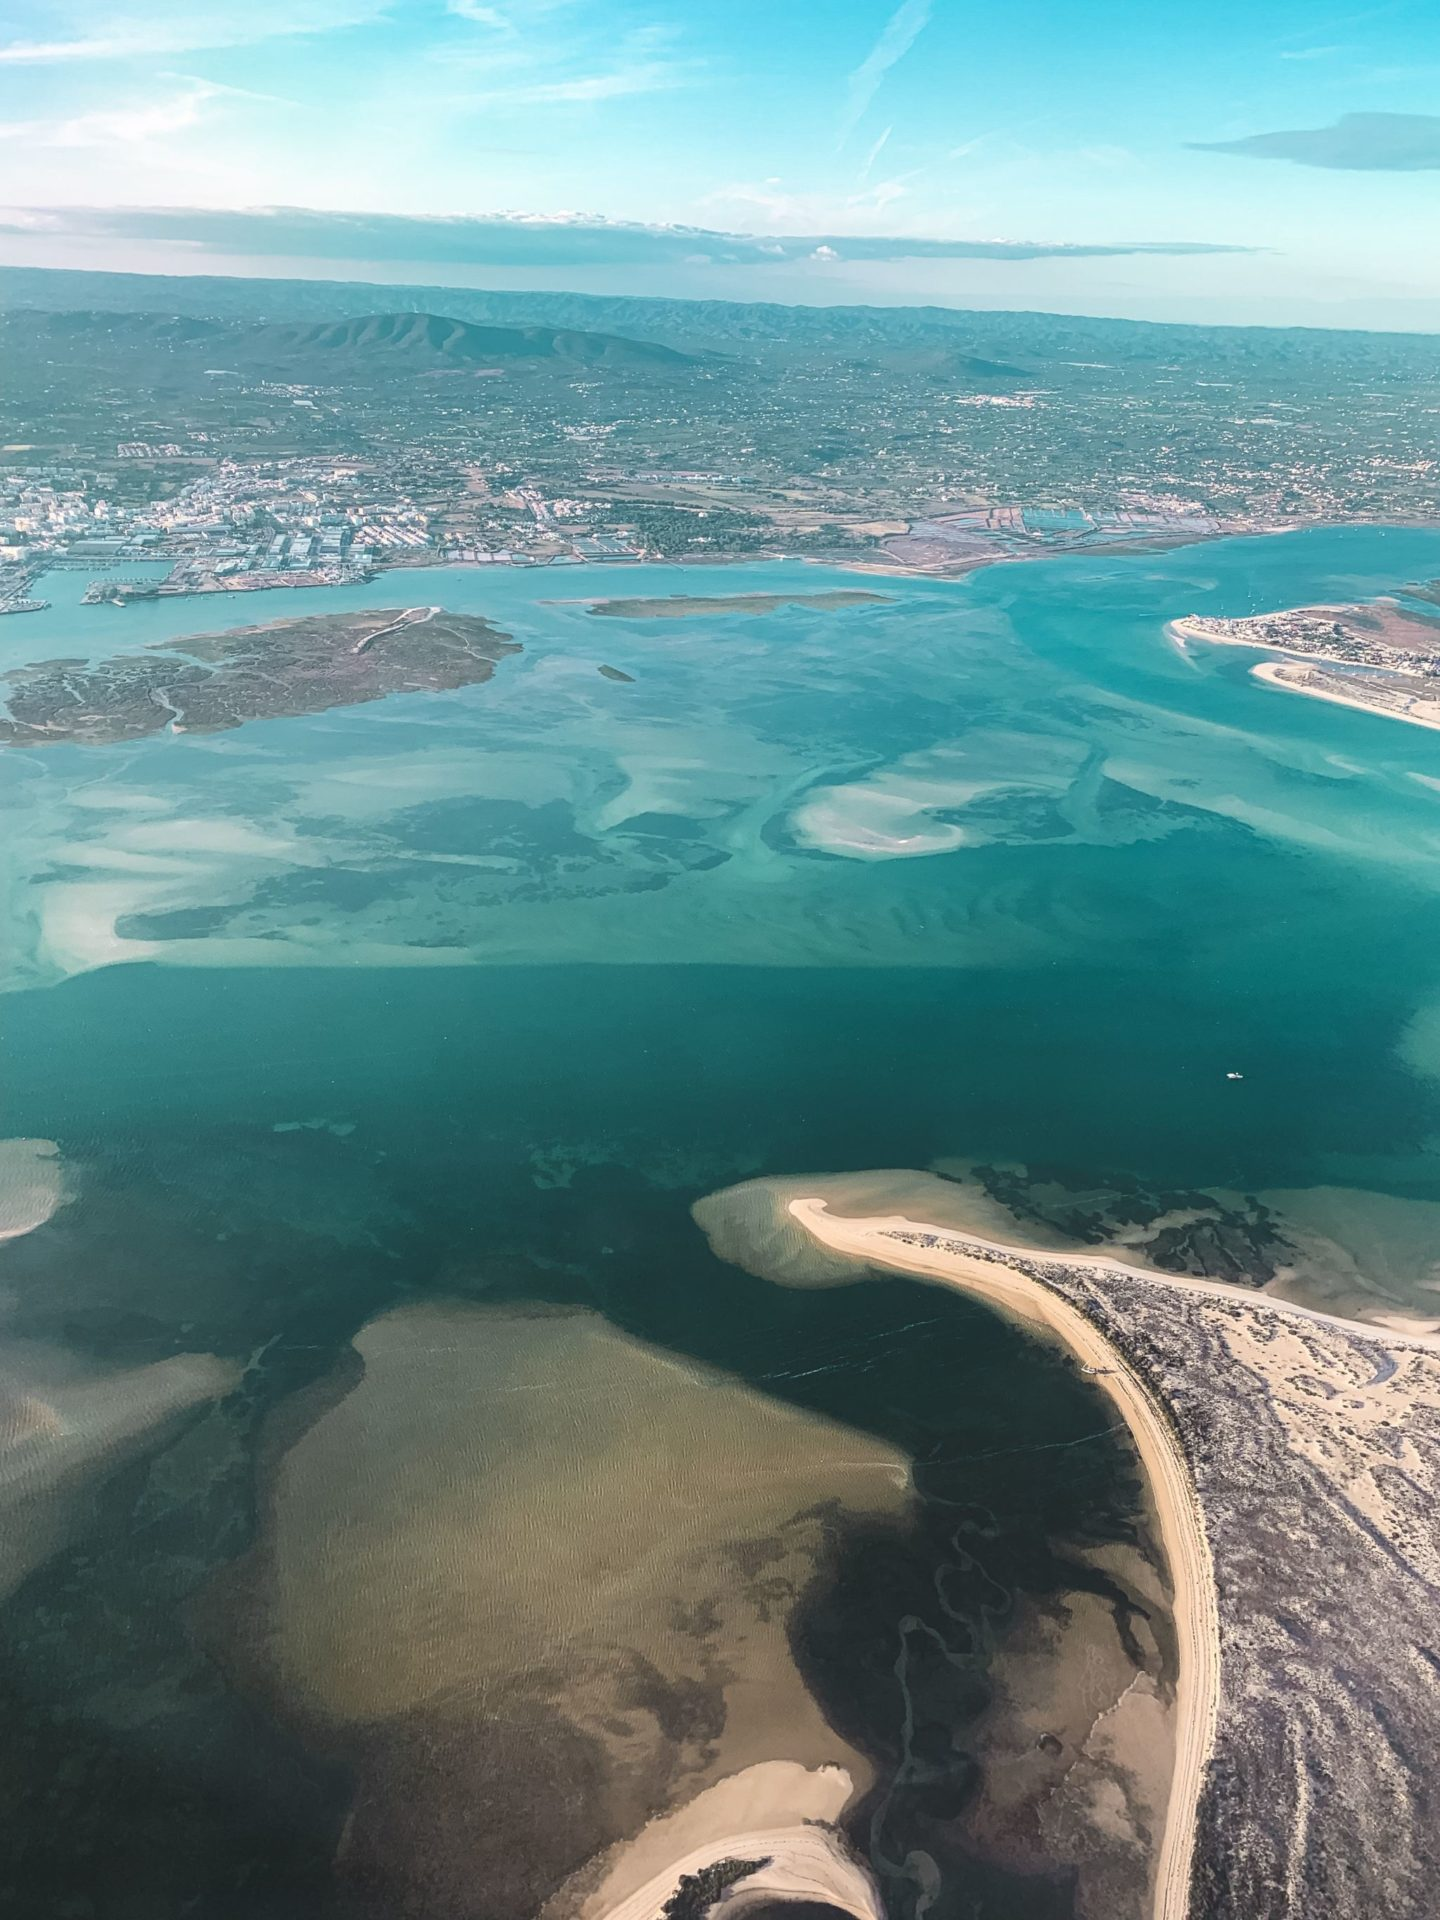 view of Alvor from the plane